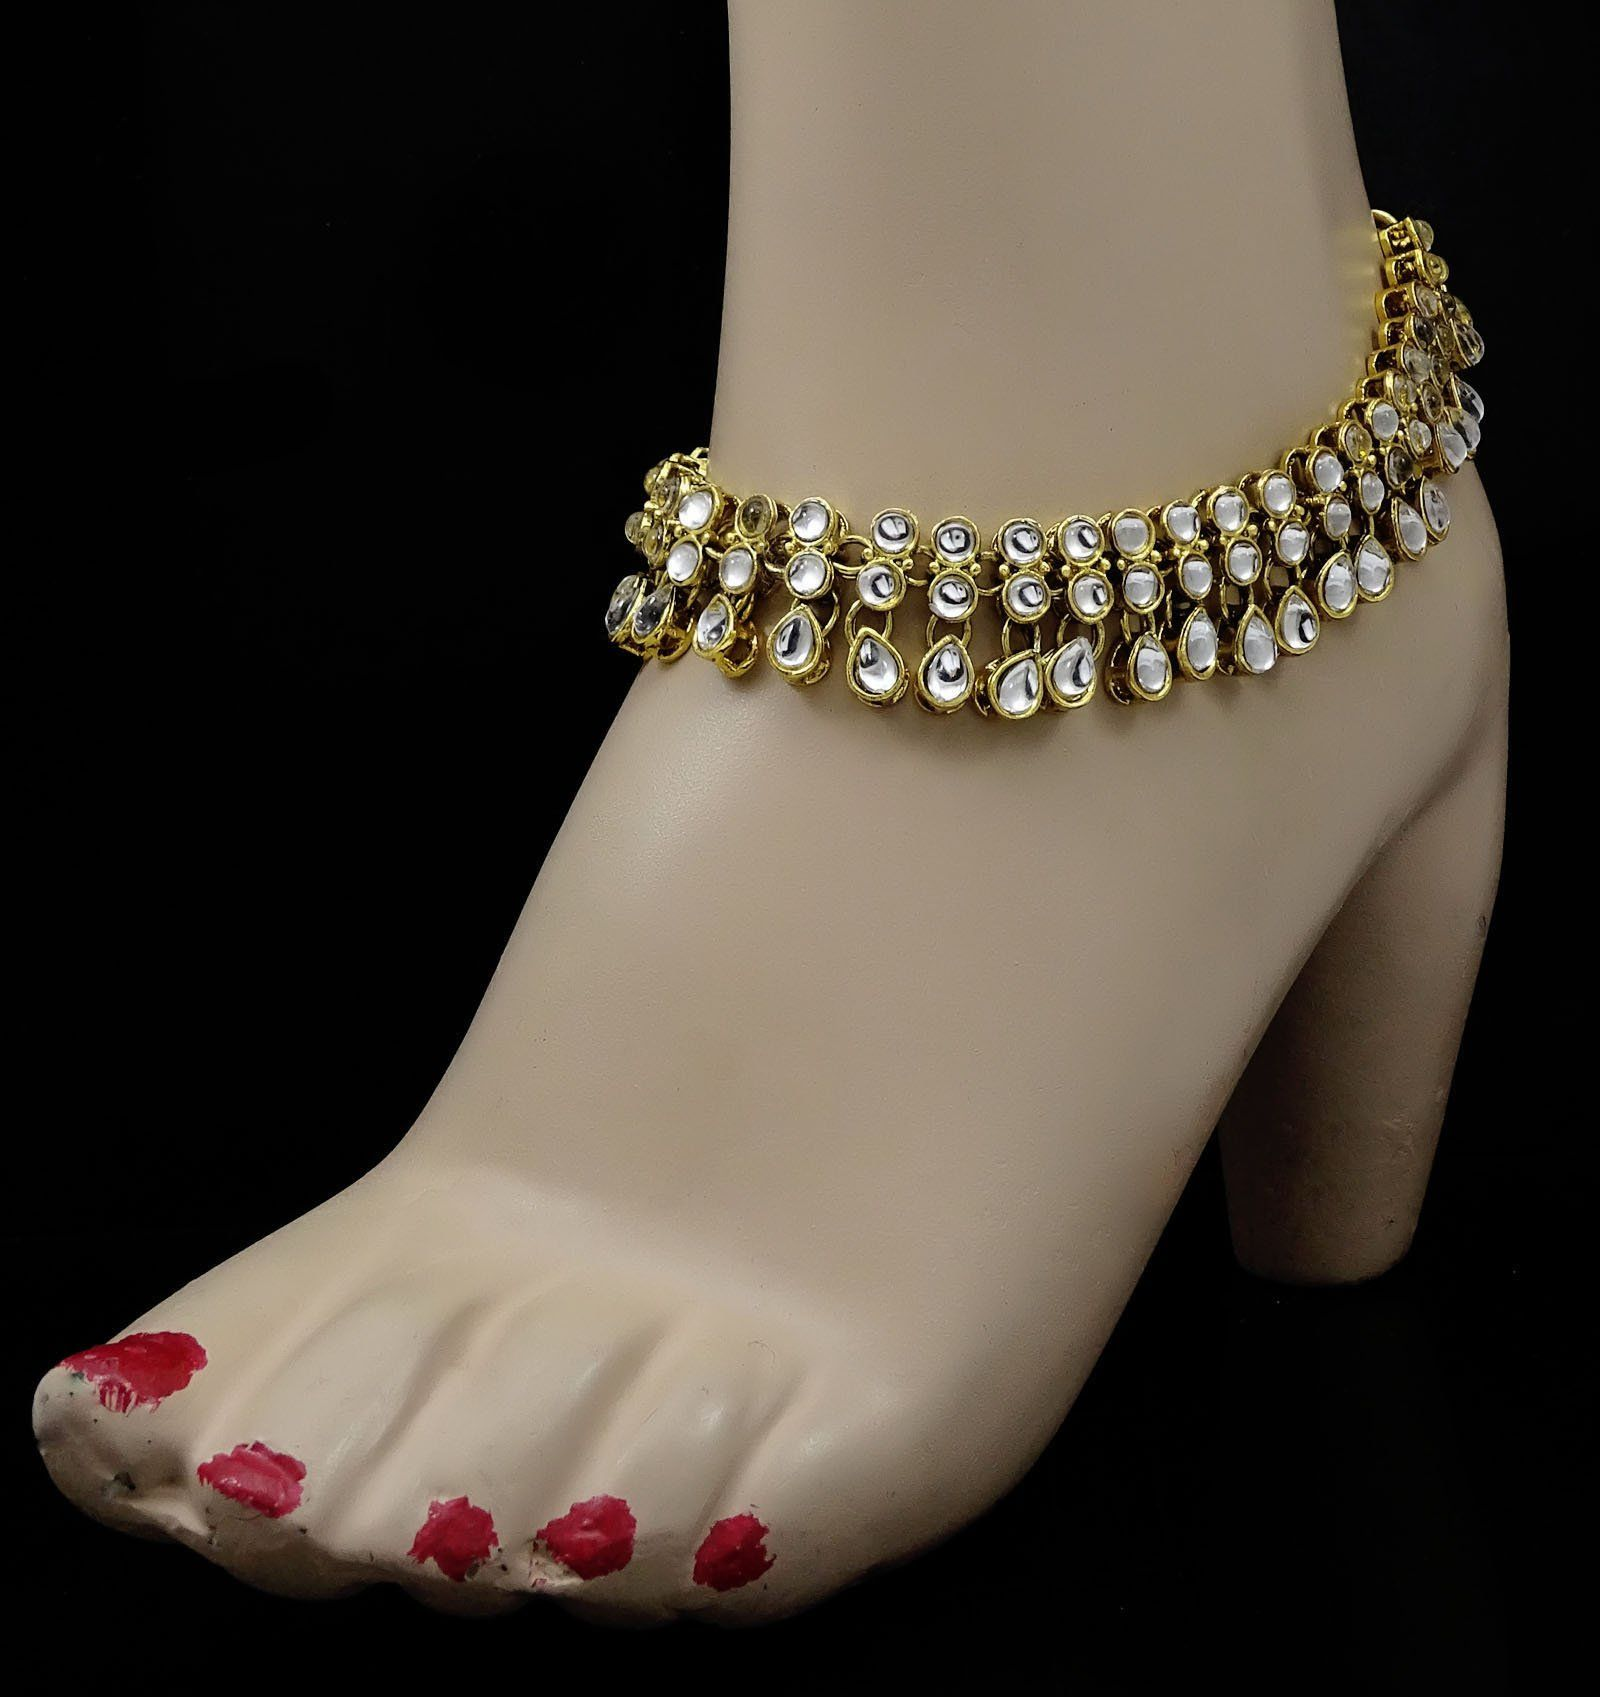 anklet bracelet foot turkish designer in ankle color women girls sexy bracelets from jewelry shoes item decoration pendant anklets tow accessories feet bead